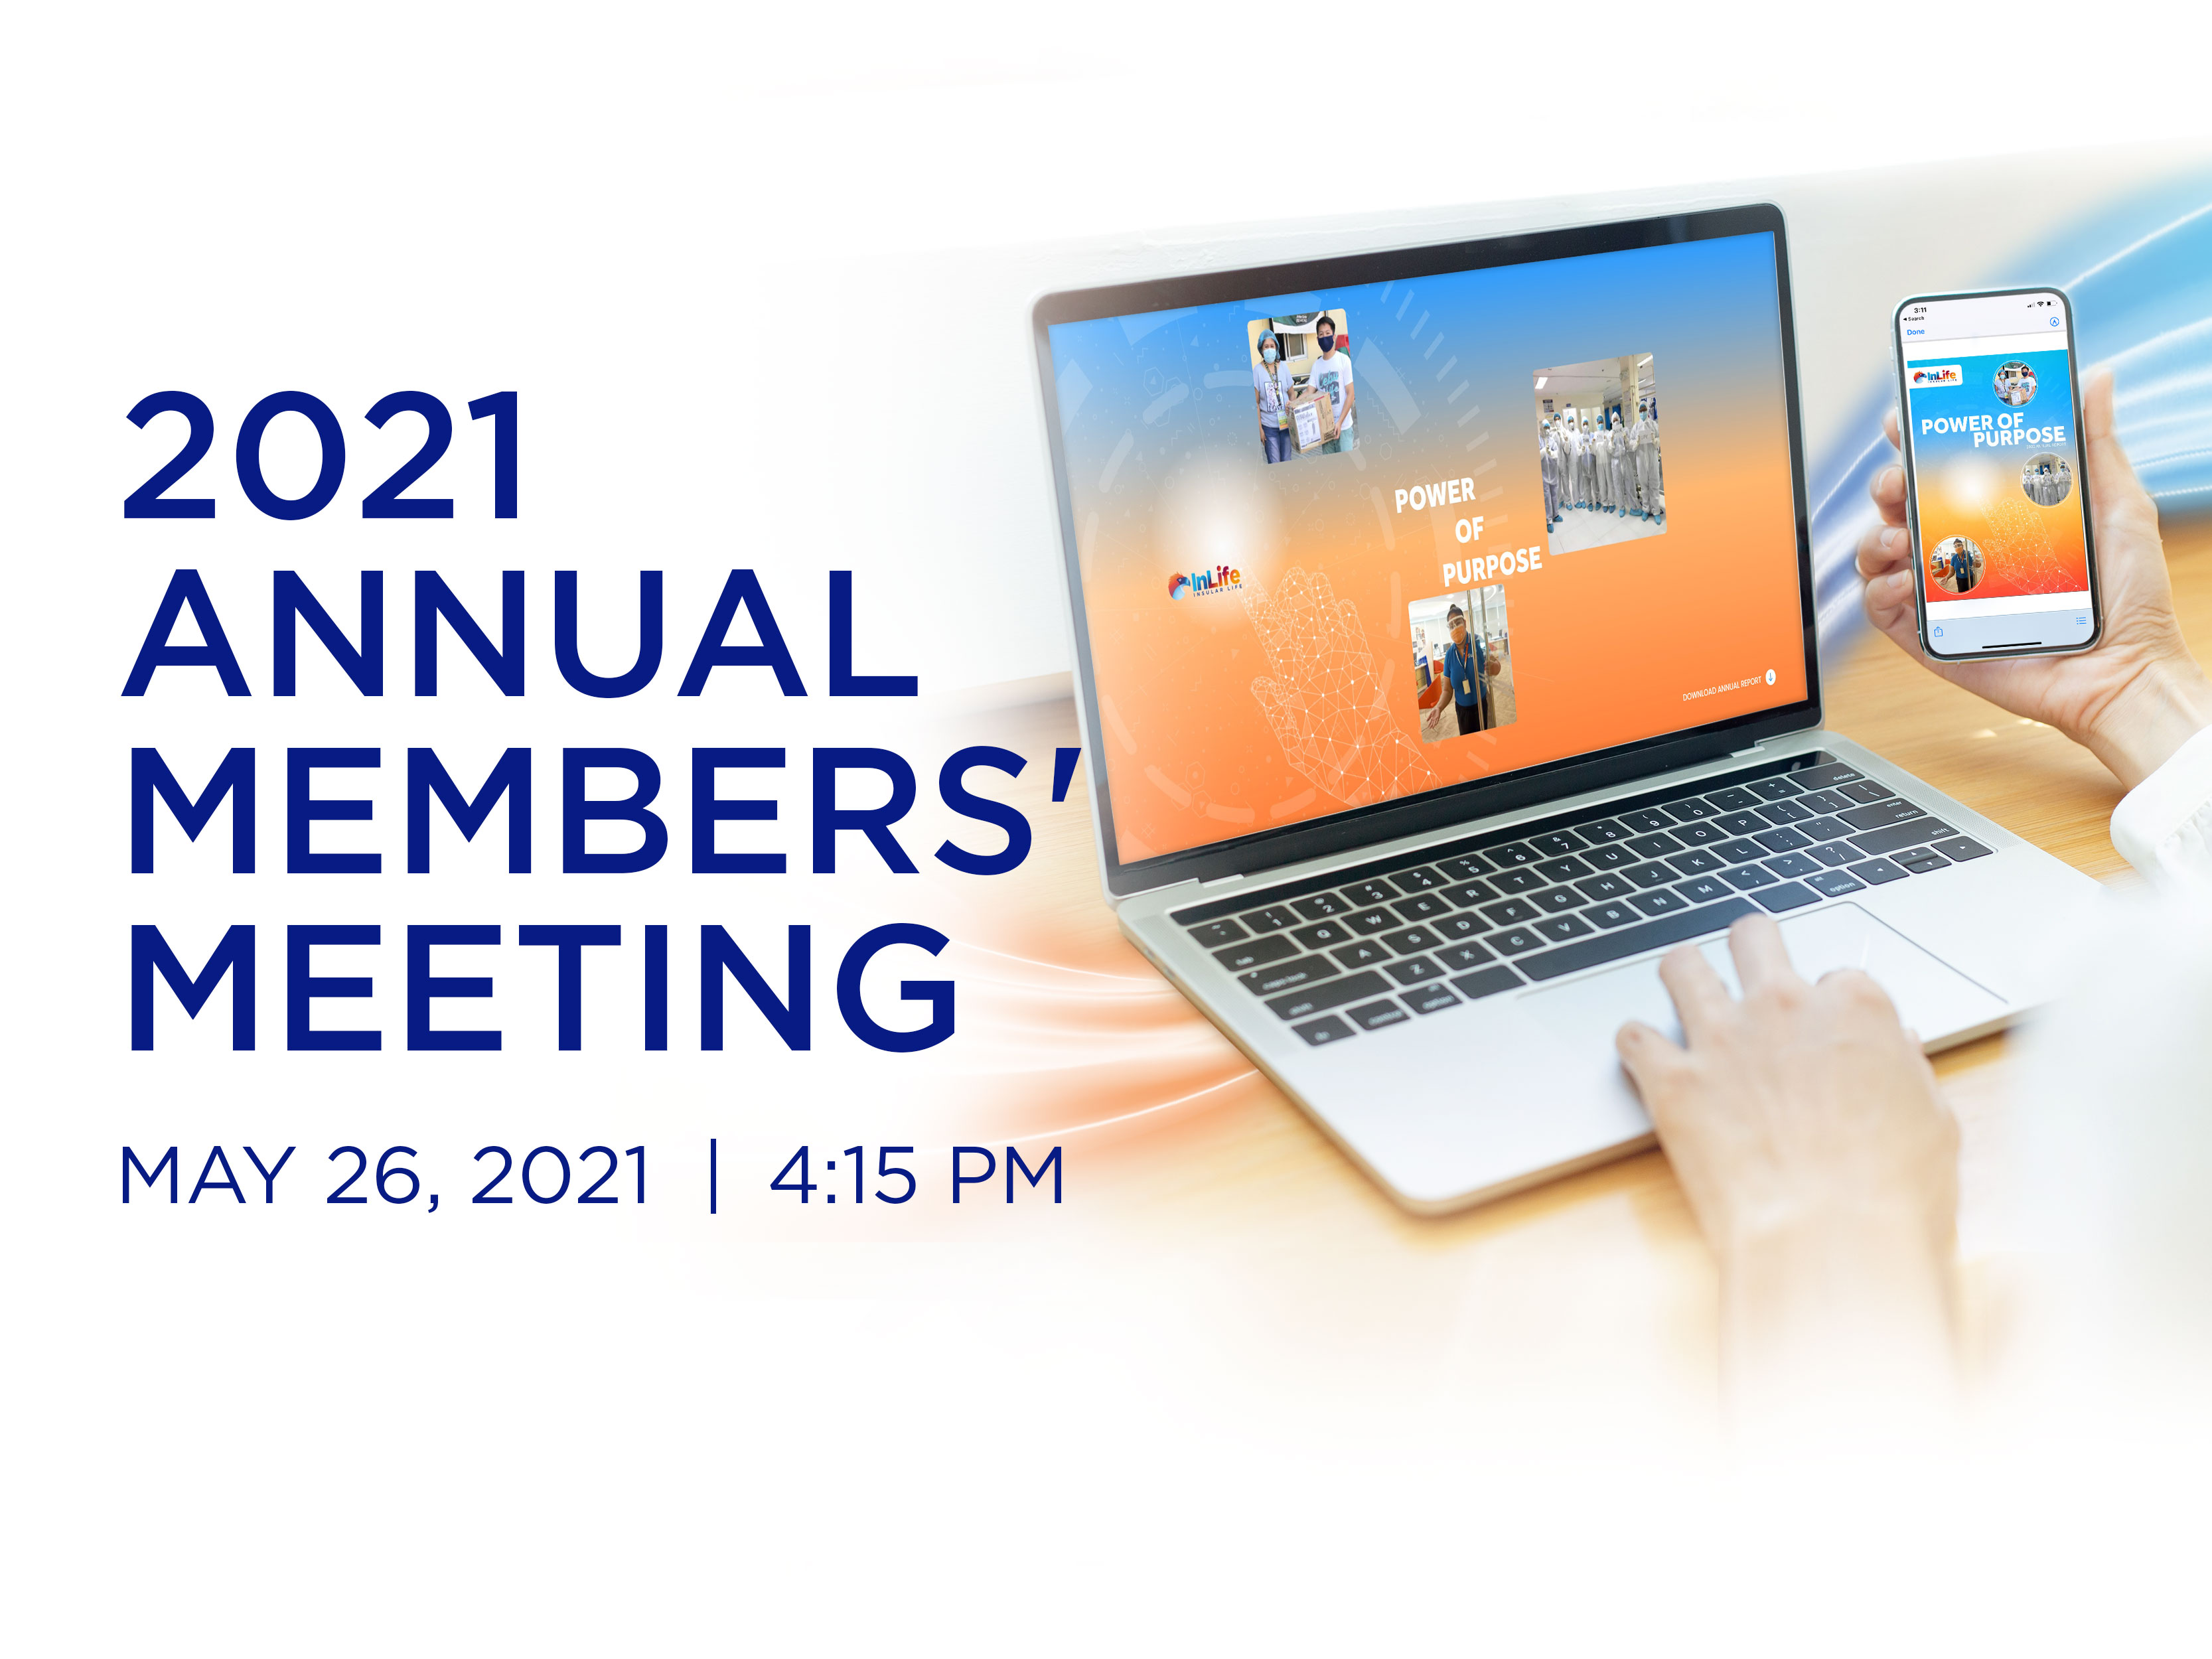 Notice of the 2021 Annual Members' Meeting